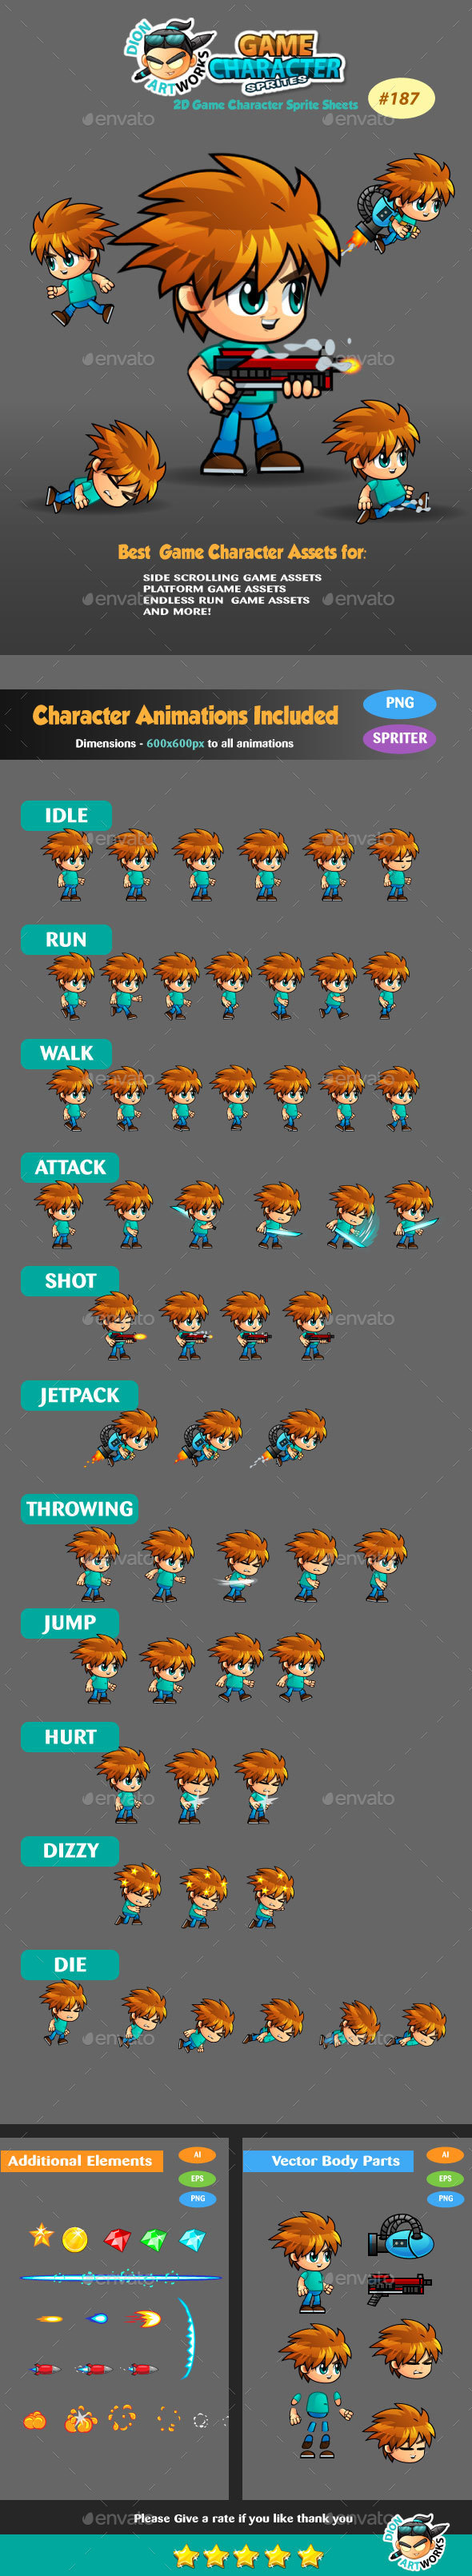 2D Game Character Sprite Sheets 187 - Sprites Game Assets